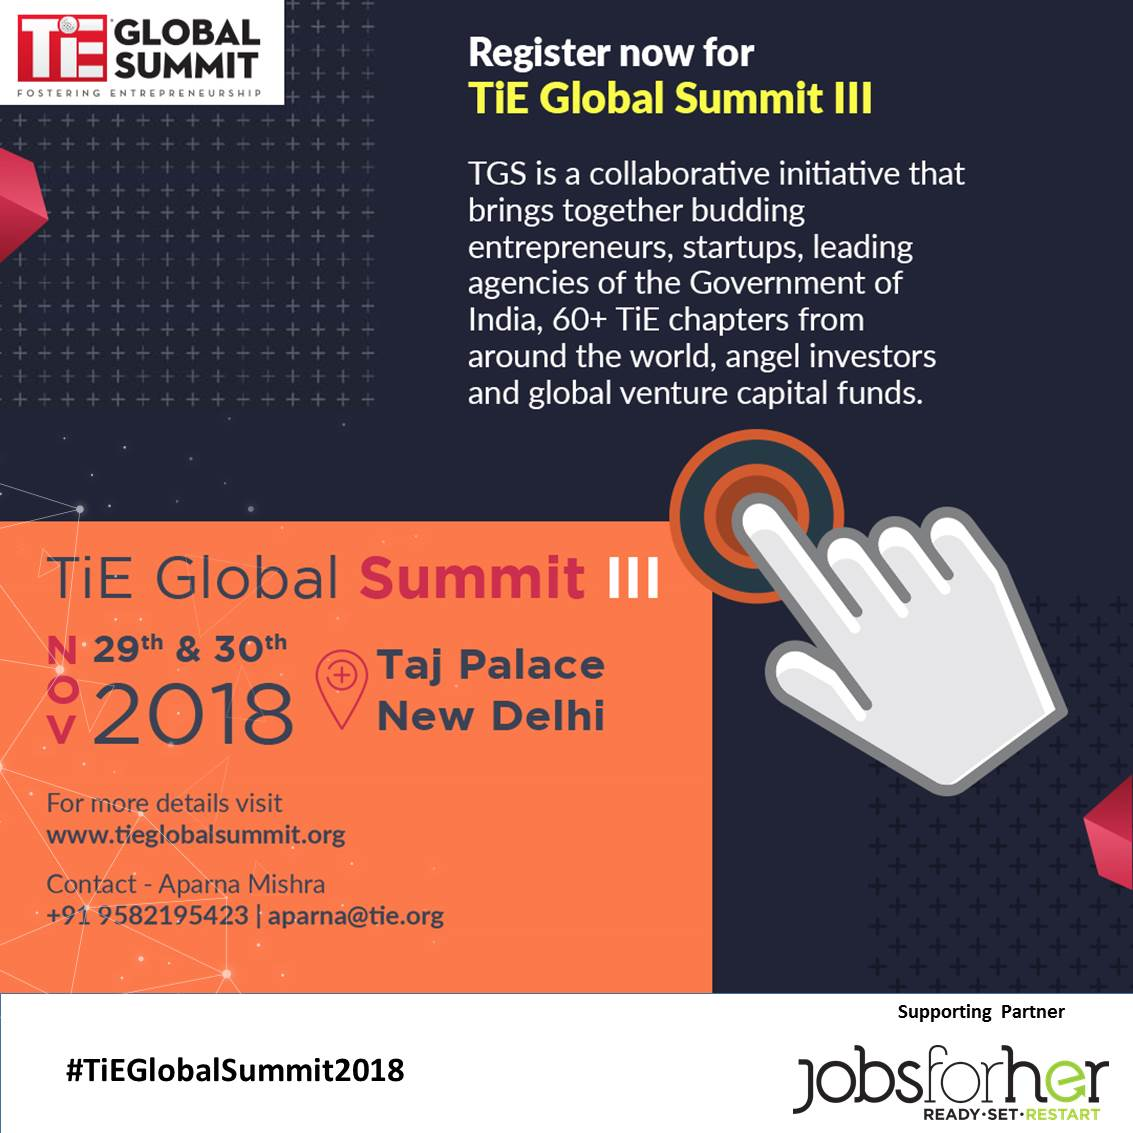 TiE Global Summit III